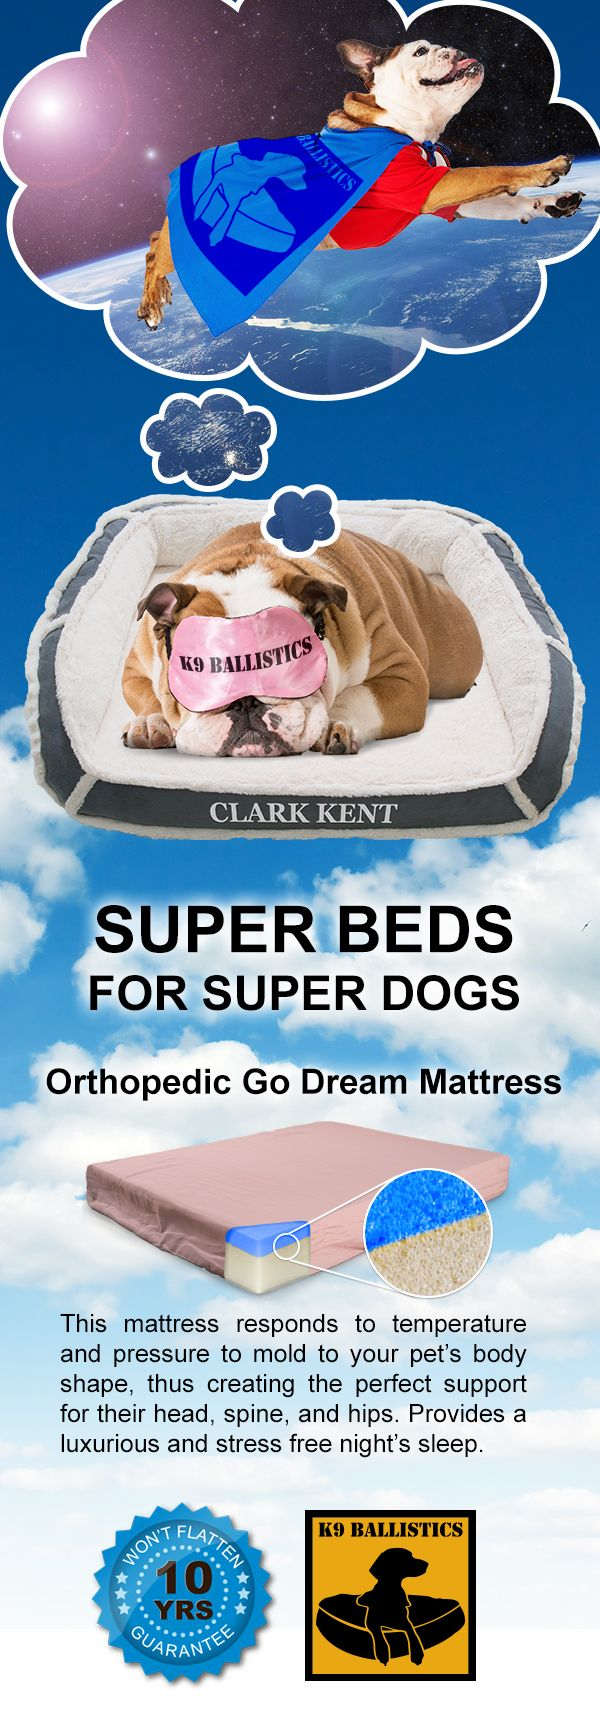 Spoil your dog with an Orthopedic Dog Bed, guaranteed not to flatten for 10 years. Free shipping in the U.S.!